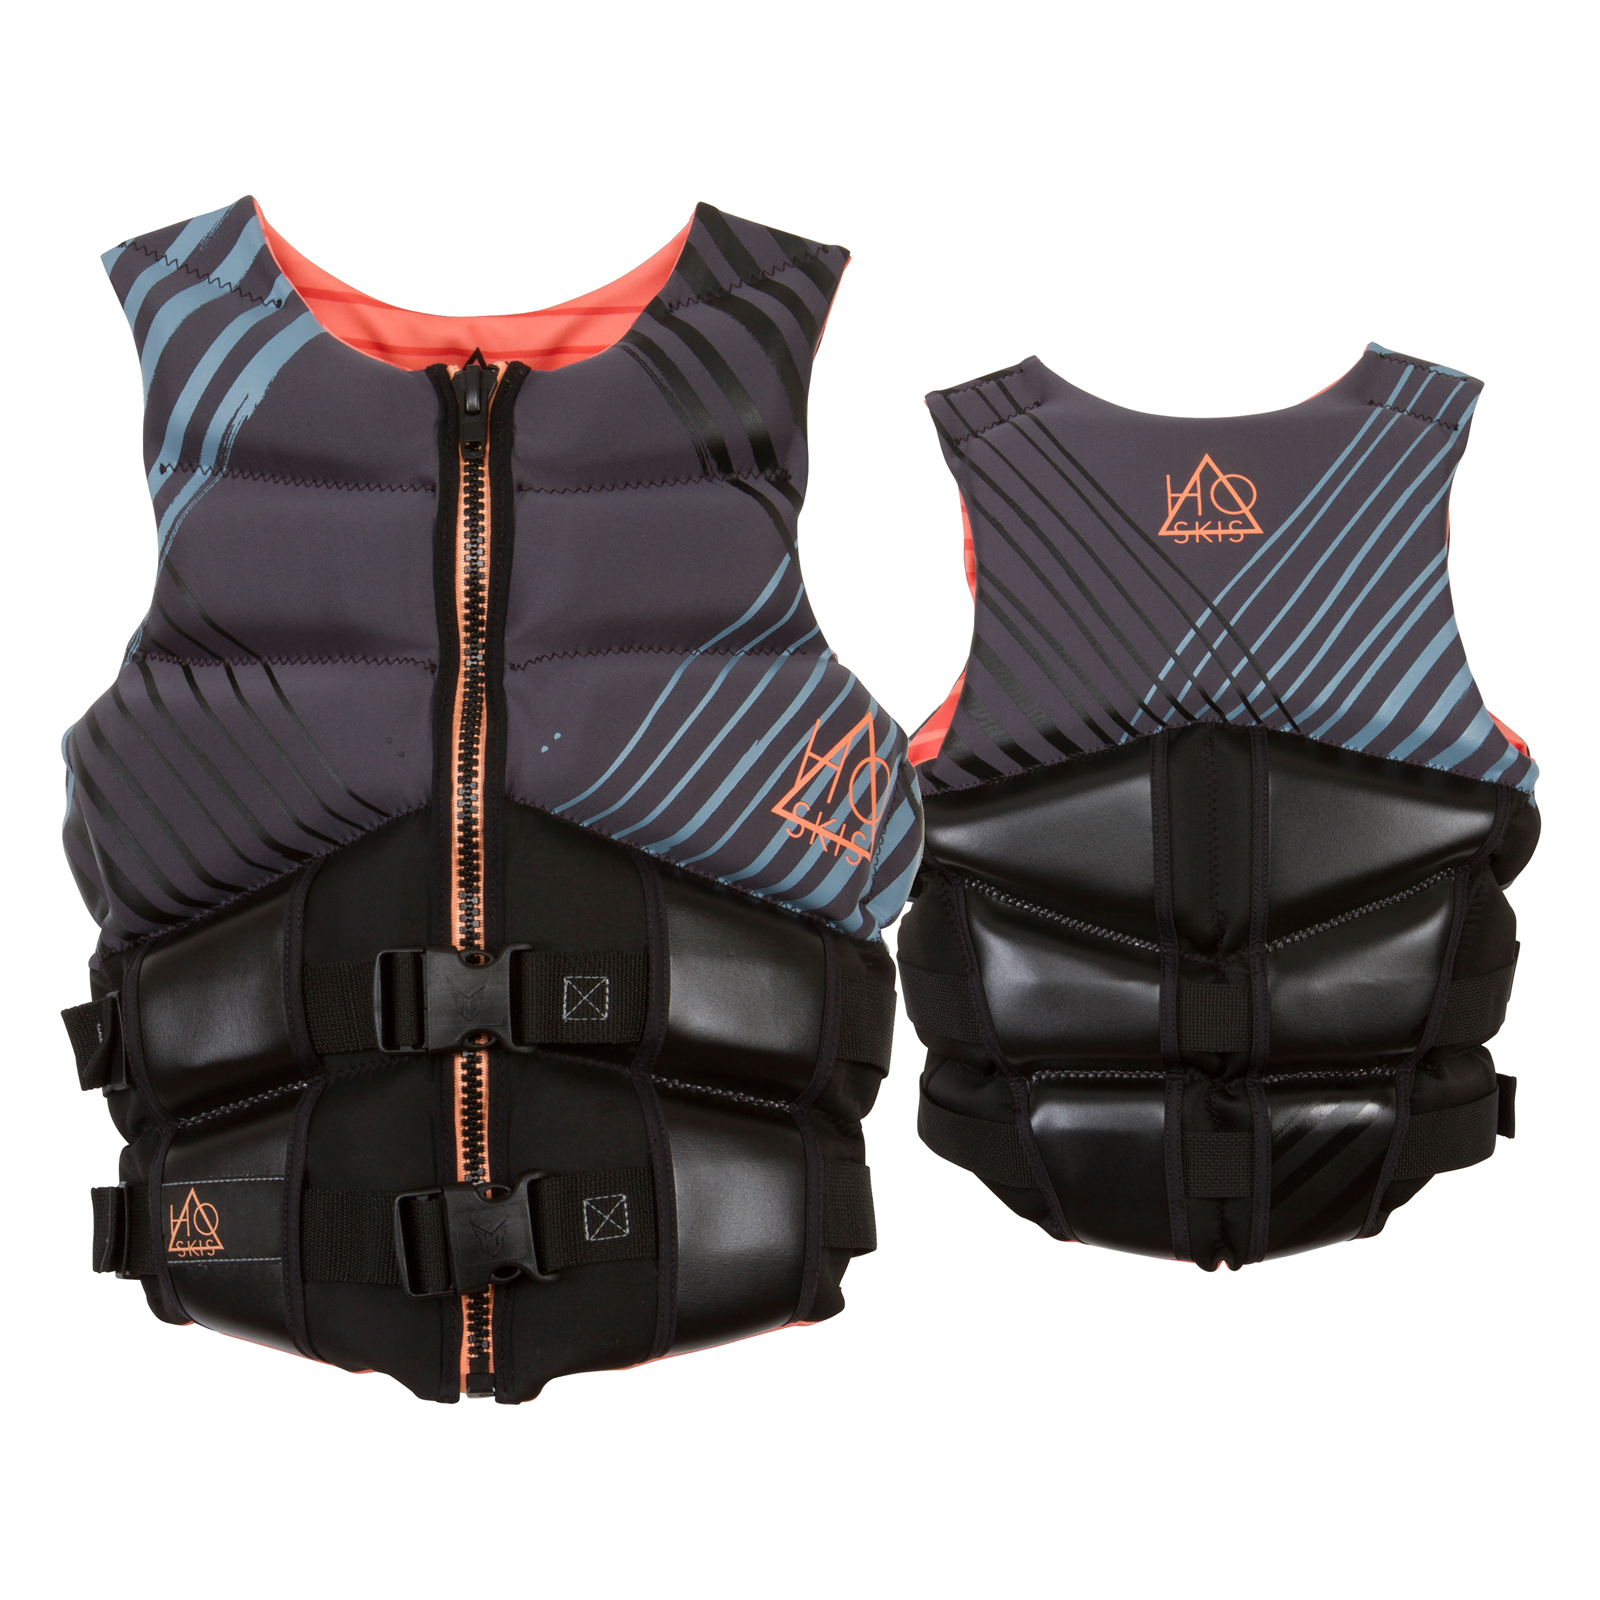 TEAM WOMEN'S NEO LIFE VEST HO SPORTS 2018